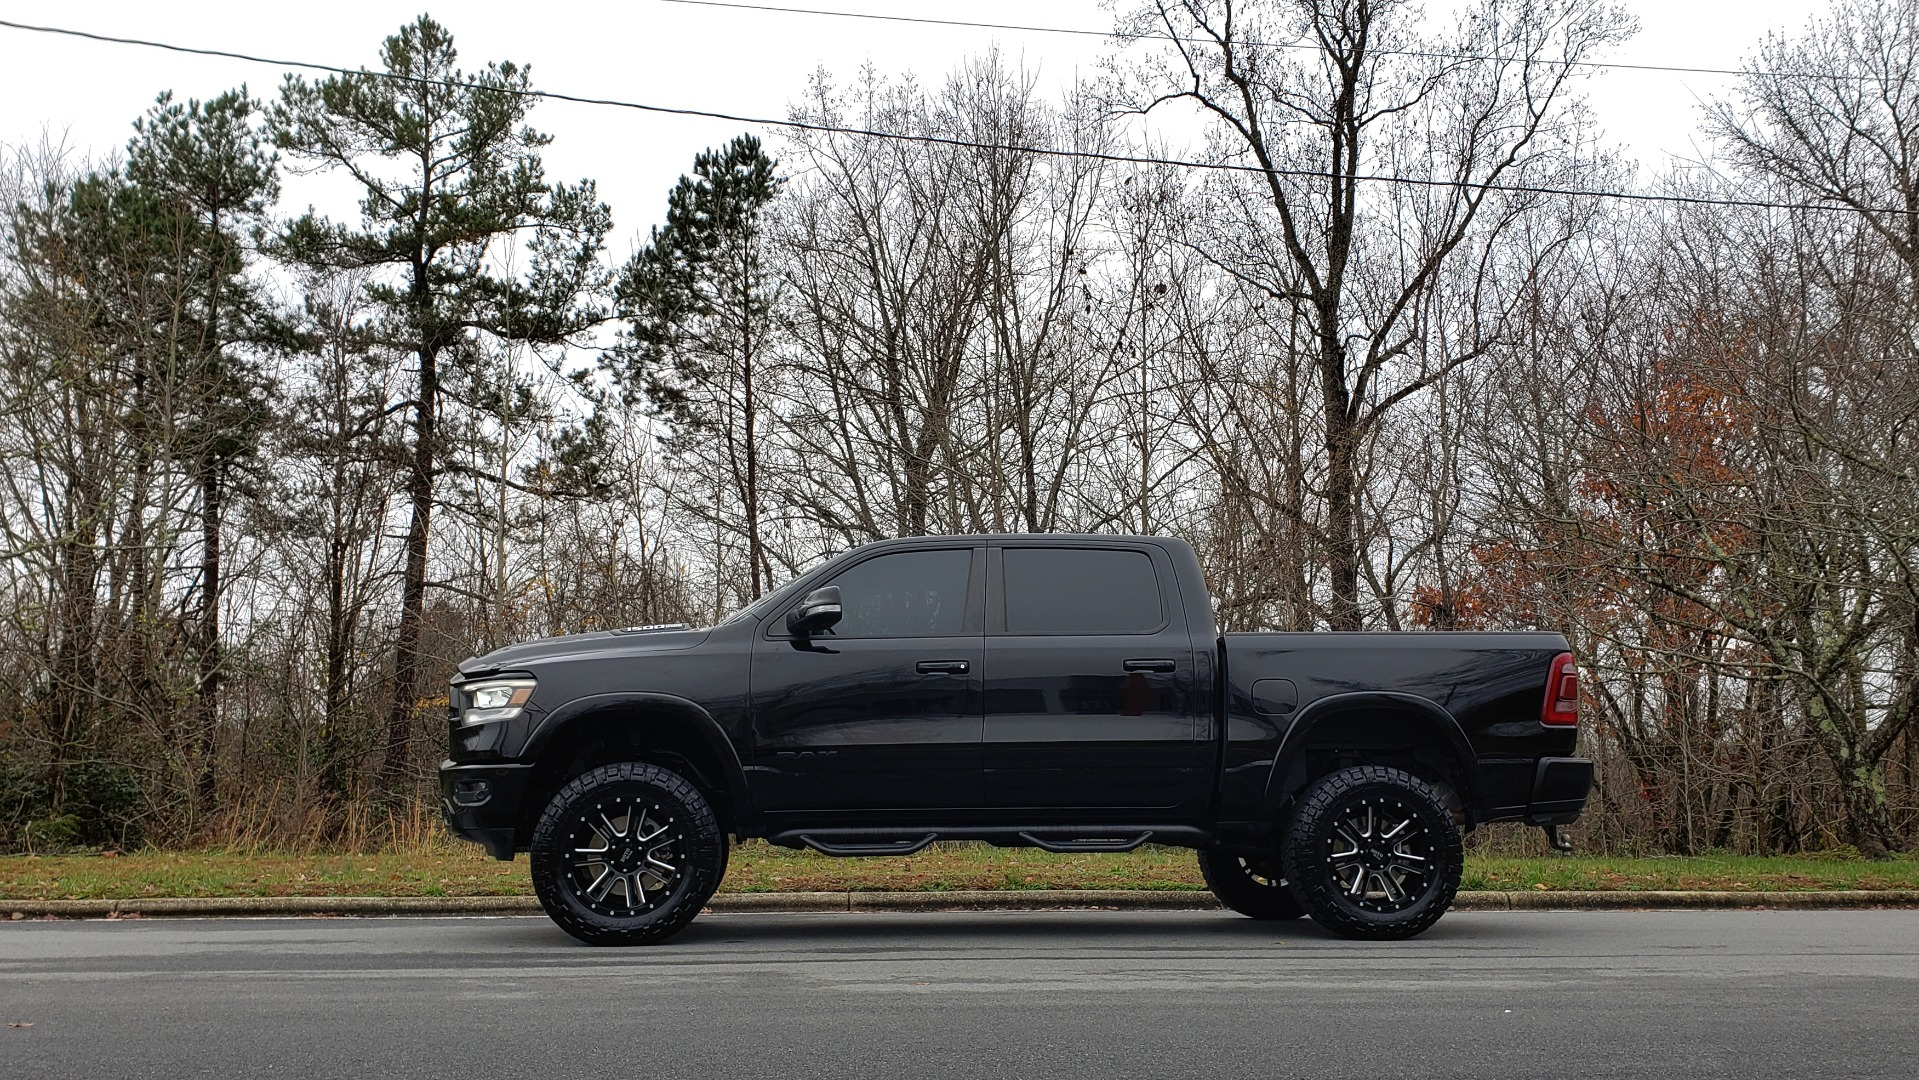 Used 2019 Ram 1500 LARAMIE SPORT / 2WD / 5.7L HEMI / NAV / BLIND SPOT / HTD STS / REARVIEW for sale Sold at Formula Imports in Charlotte NC 28227 3